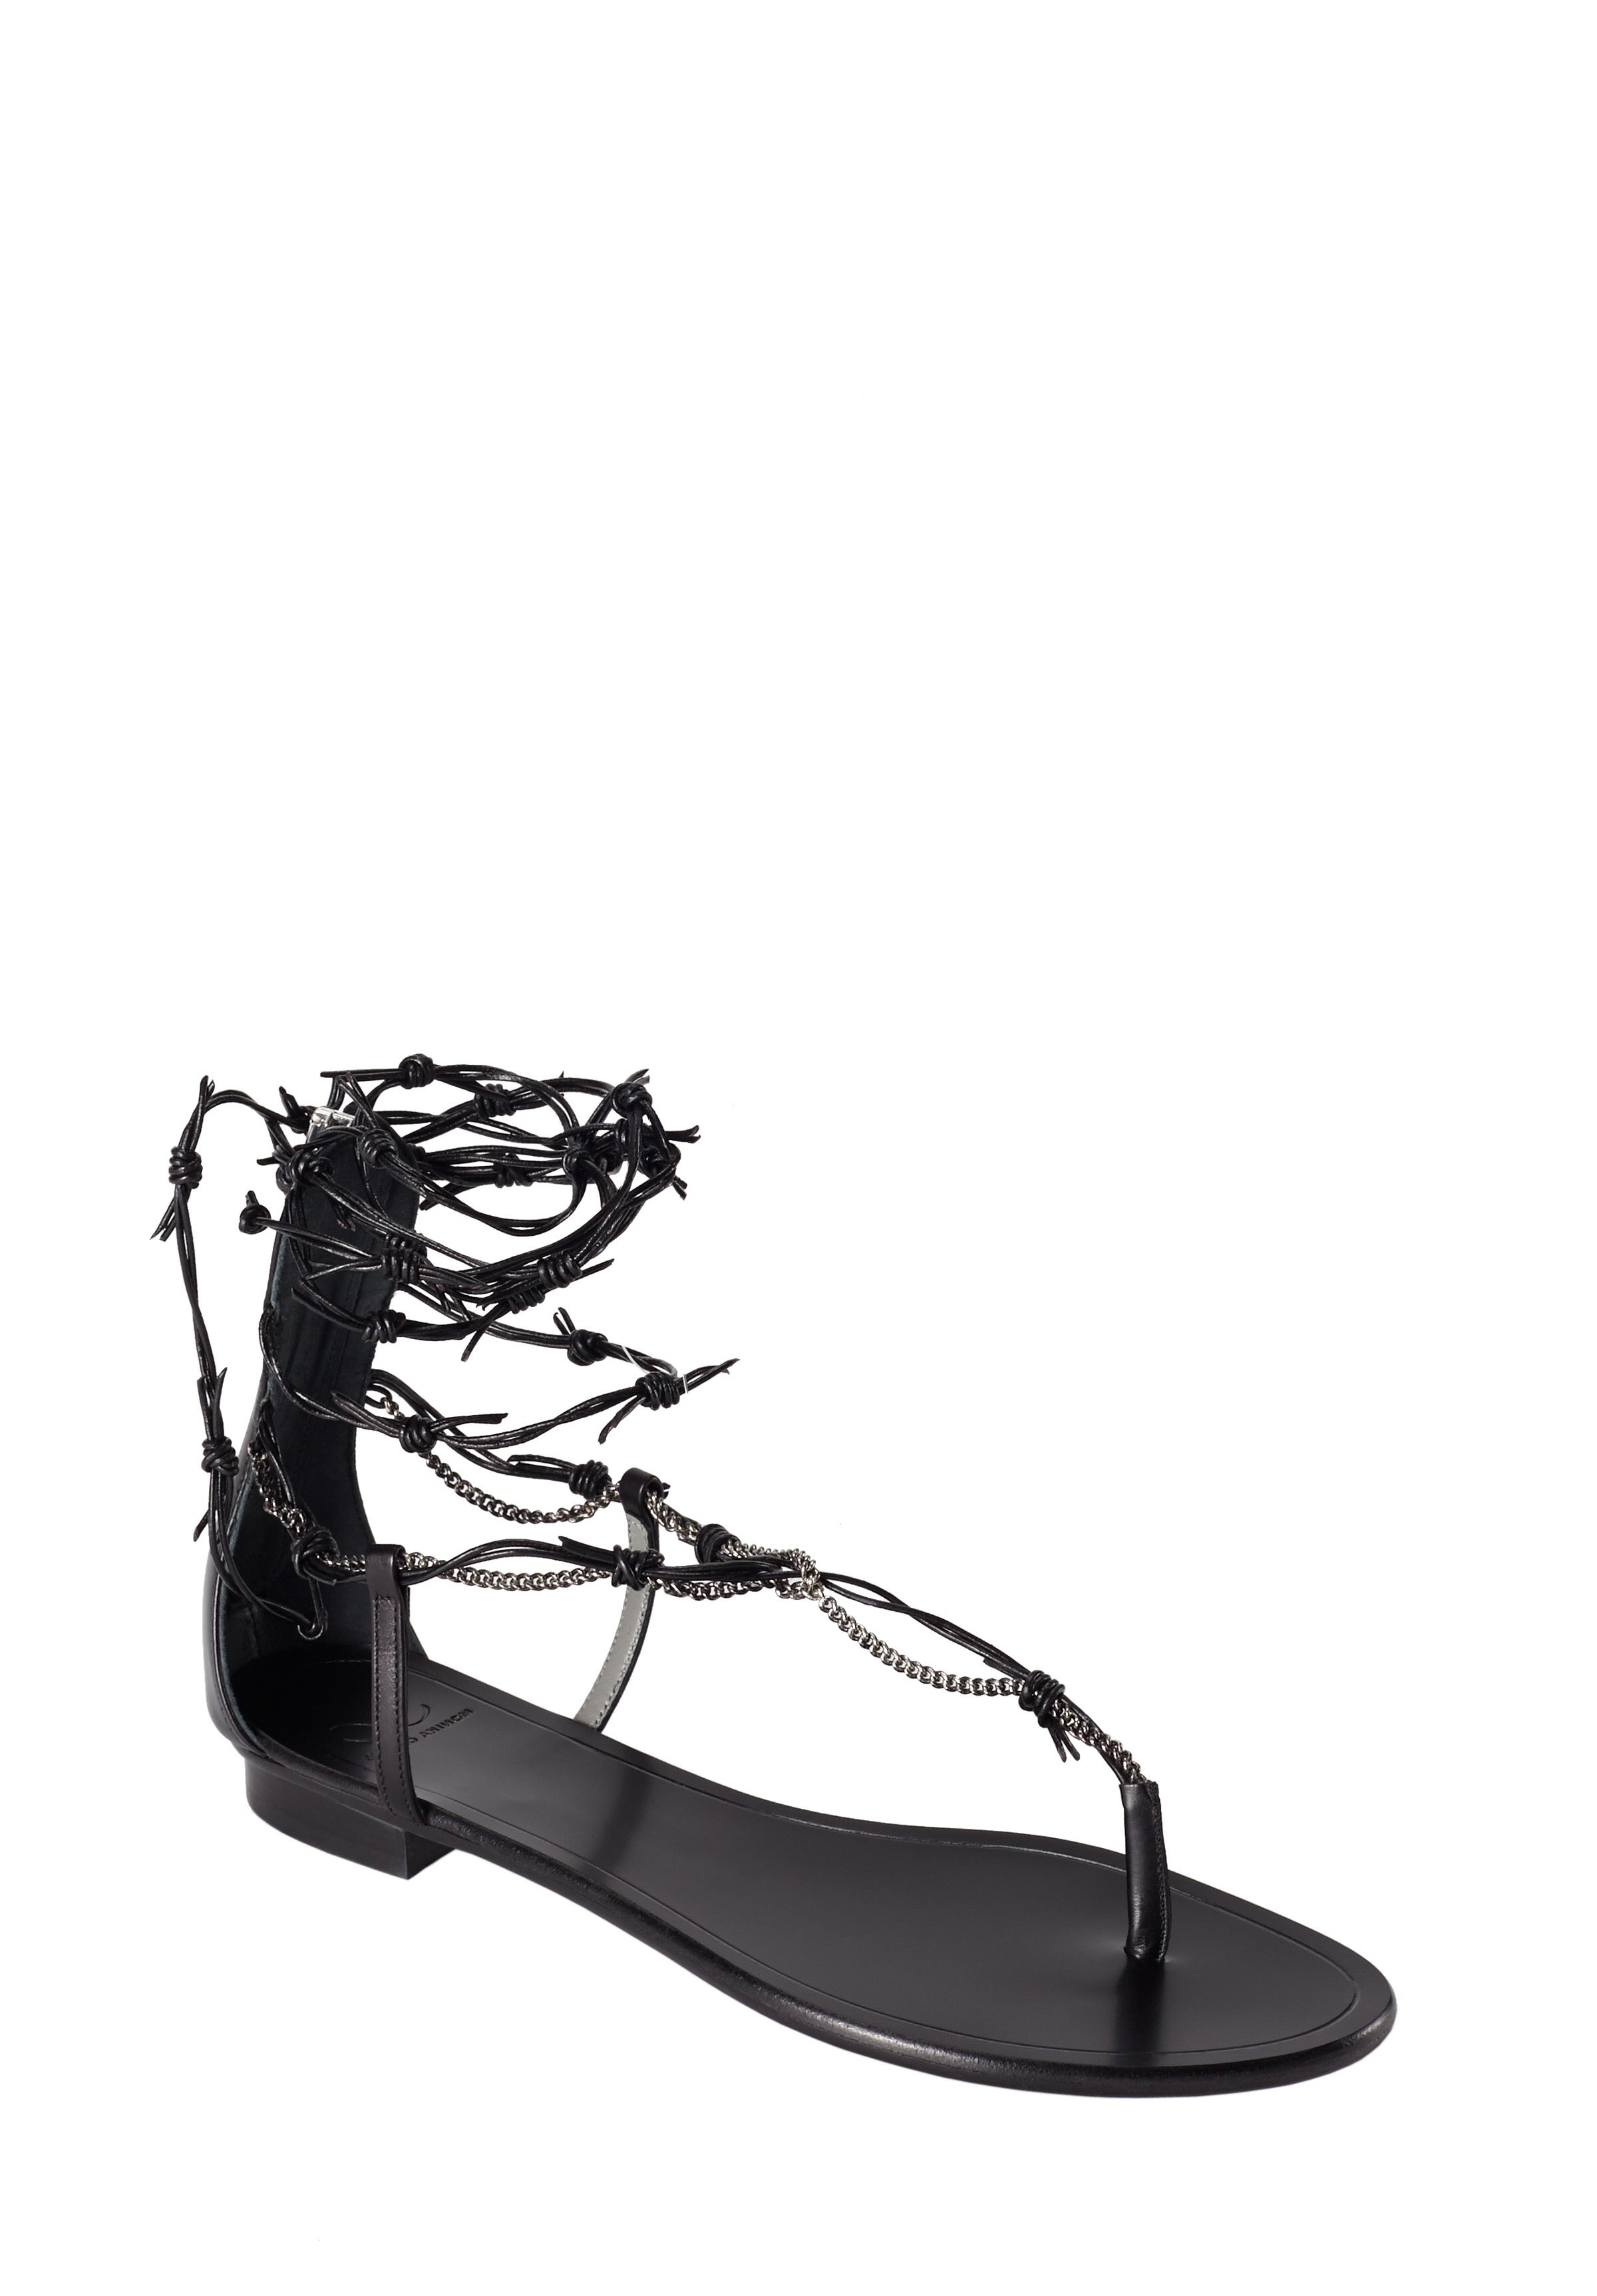 BARROS BLACK CALF SANDAL